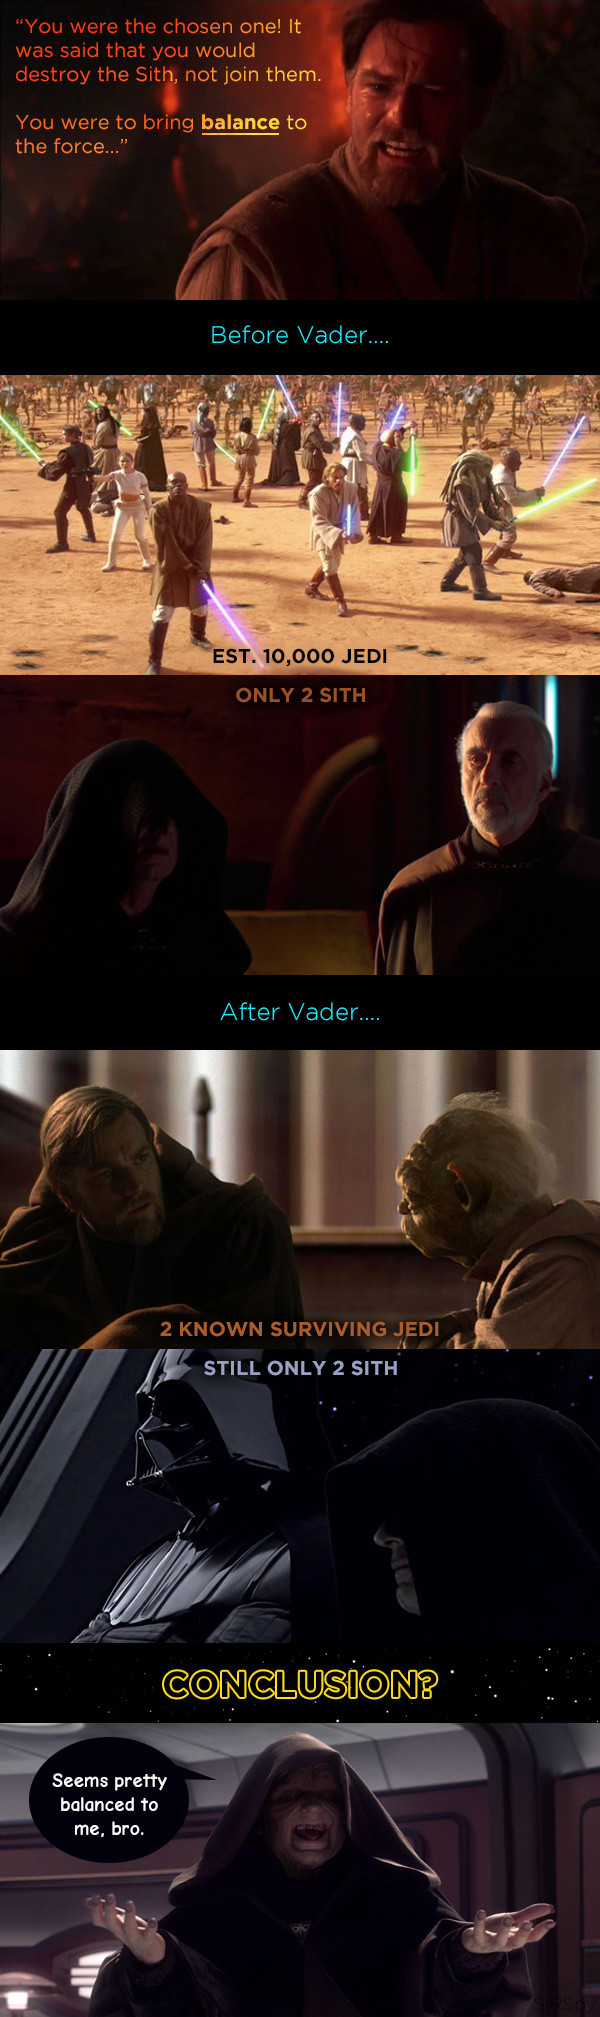 The 'balance-to-the-force' prophecy always bothered me